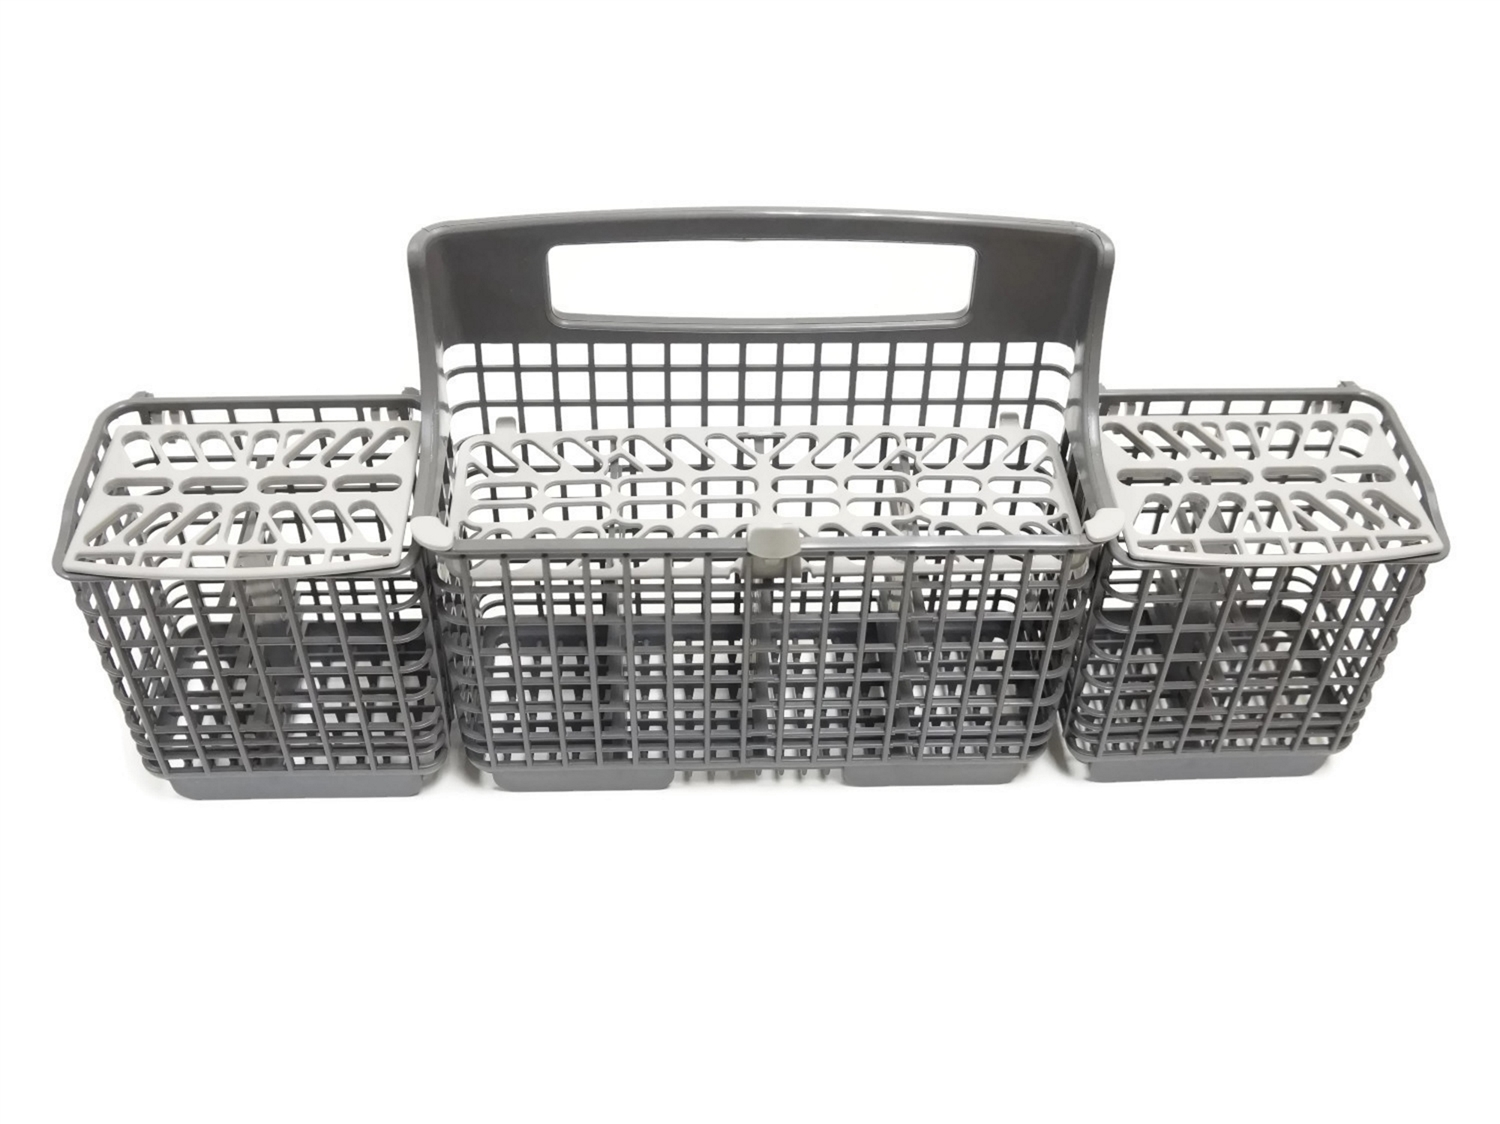 Whirlpool Kenmore W10807920 Dishwasher Silverware Basket